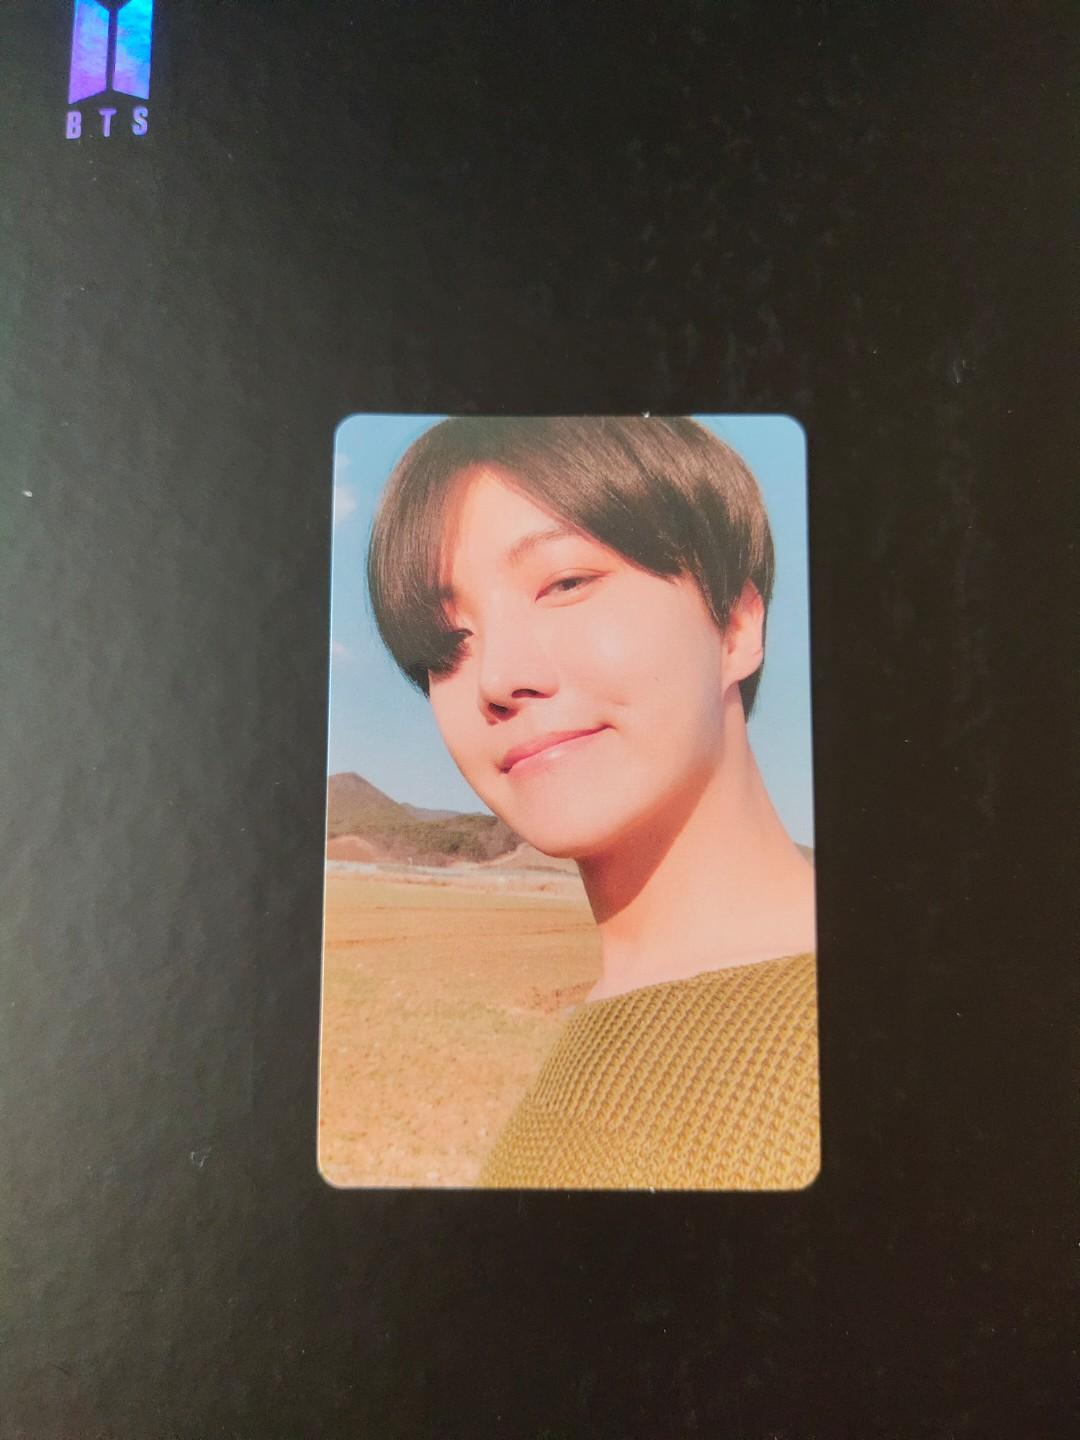 【WTS】BTS Official Love Yourself Tear Album JHope PC